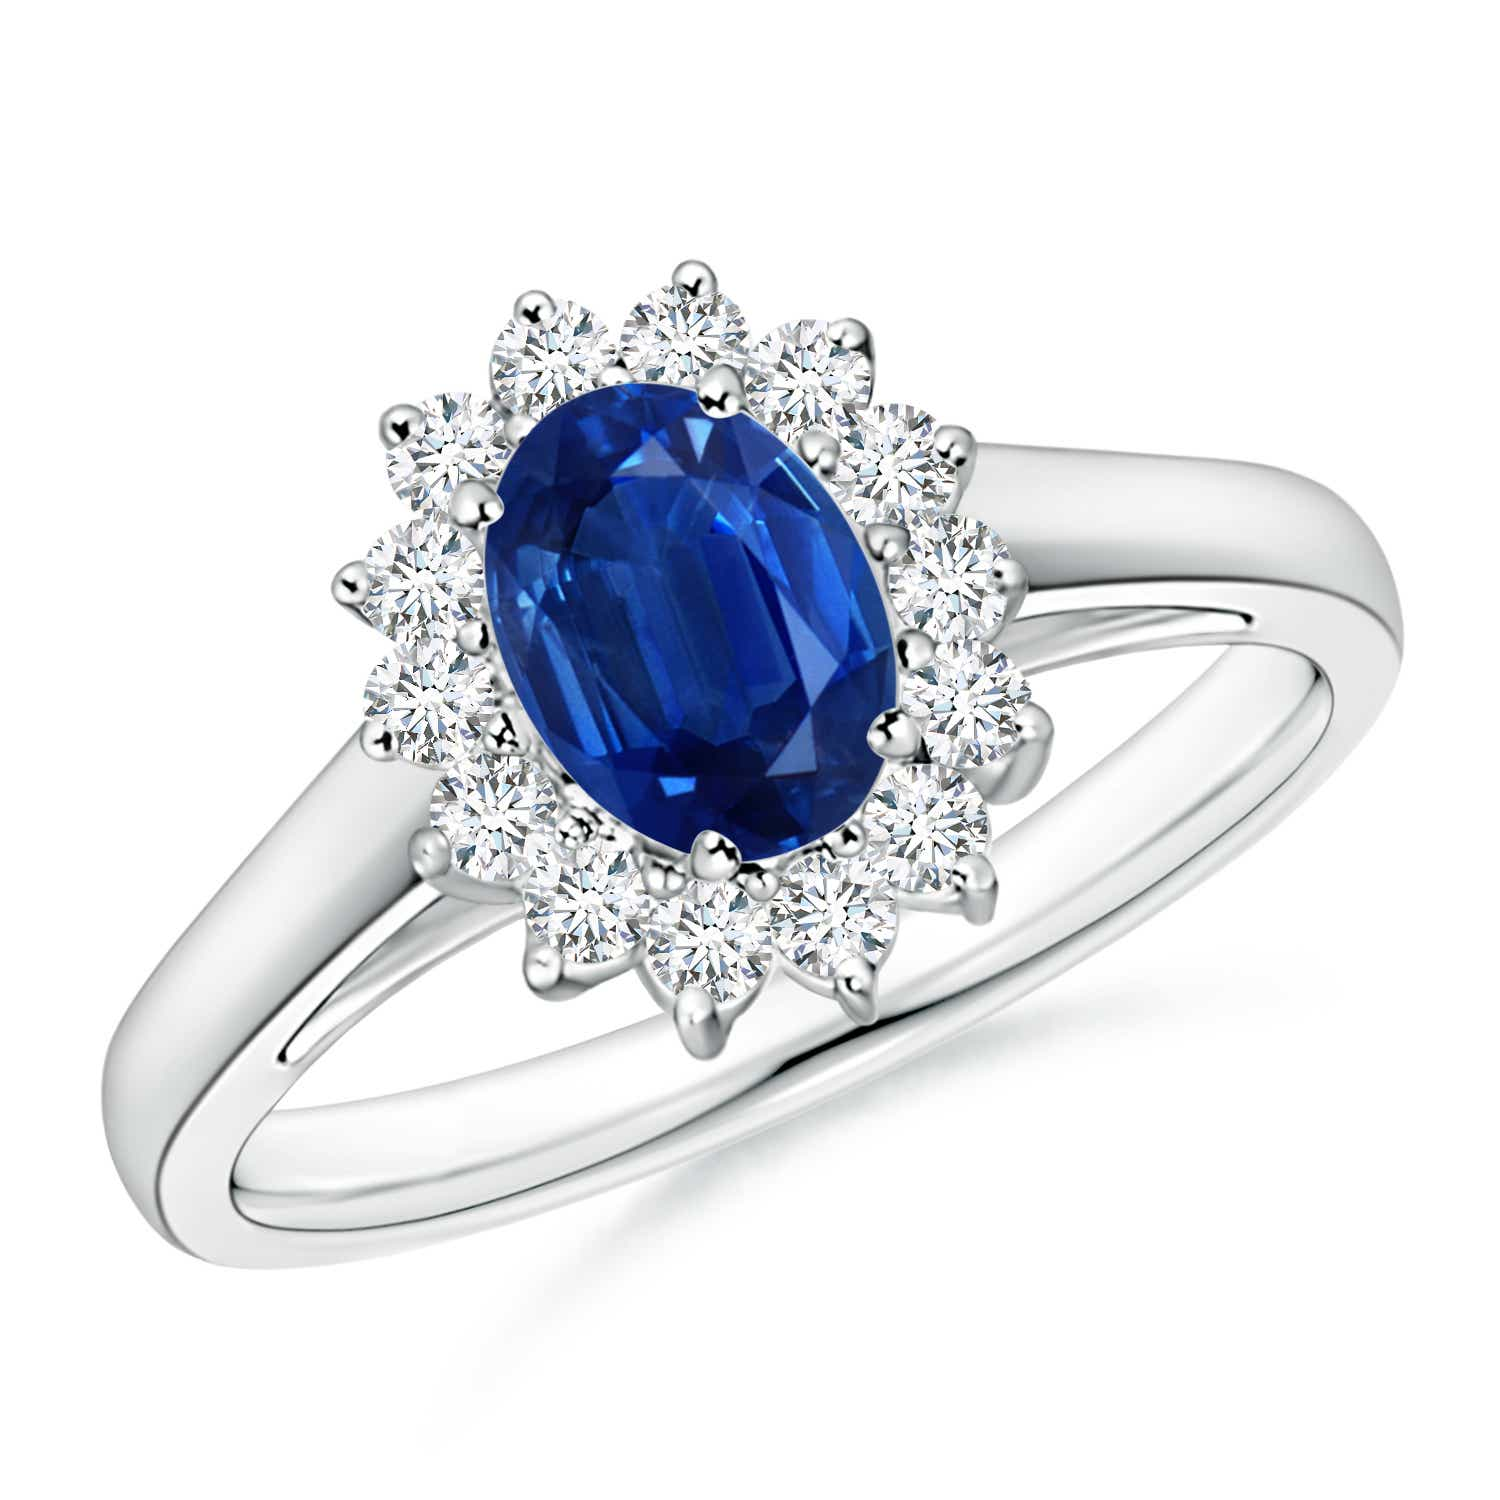 Angara Blue Sapphire Engagement Ring in Yellow Gold